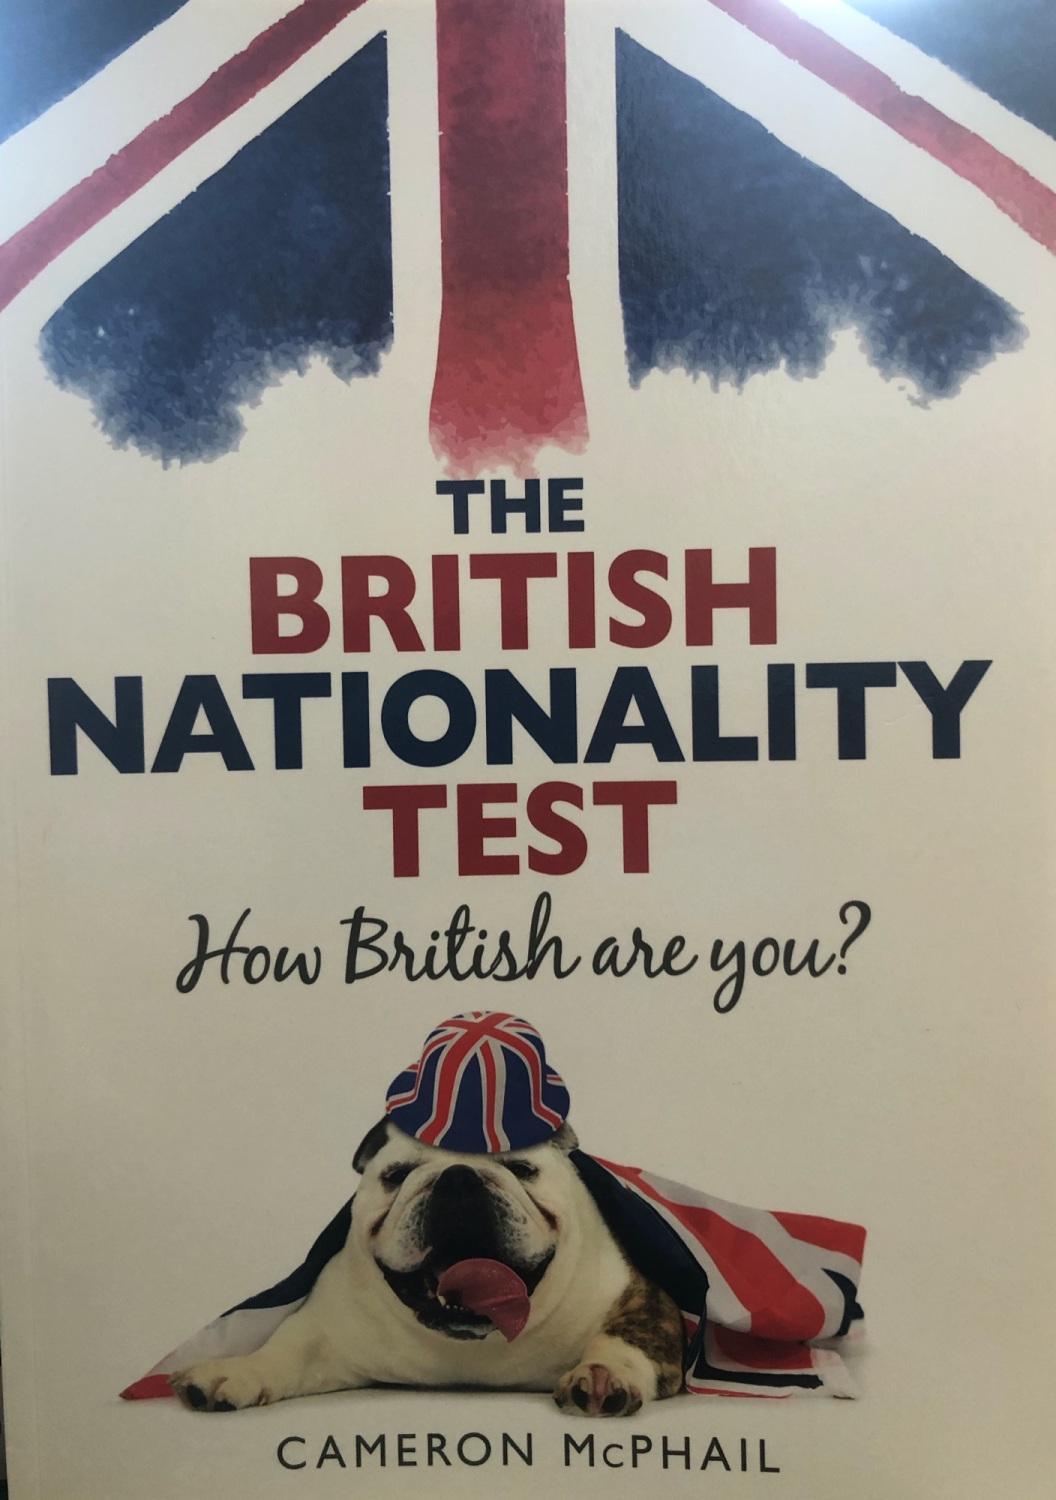 The British Nationality Test